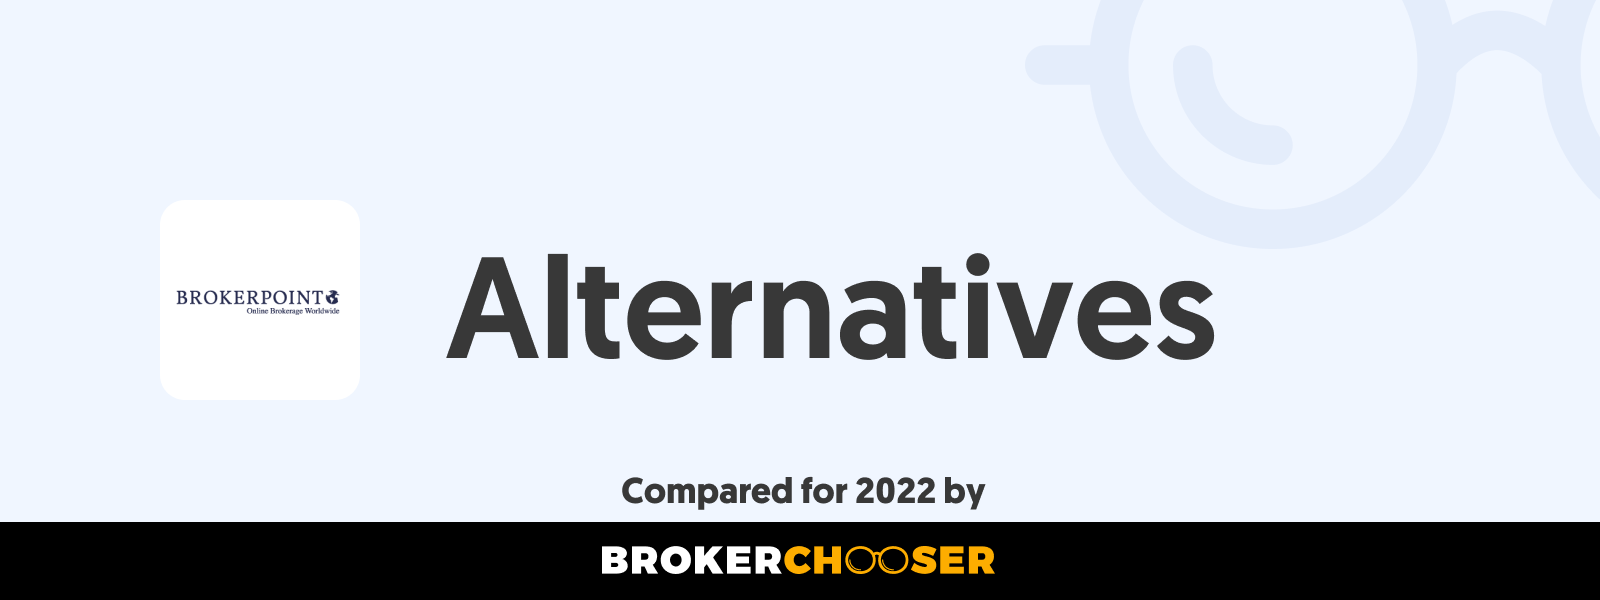 Brokerpoint Alternatives